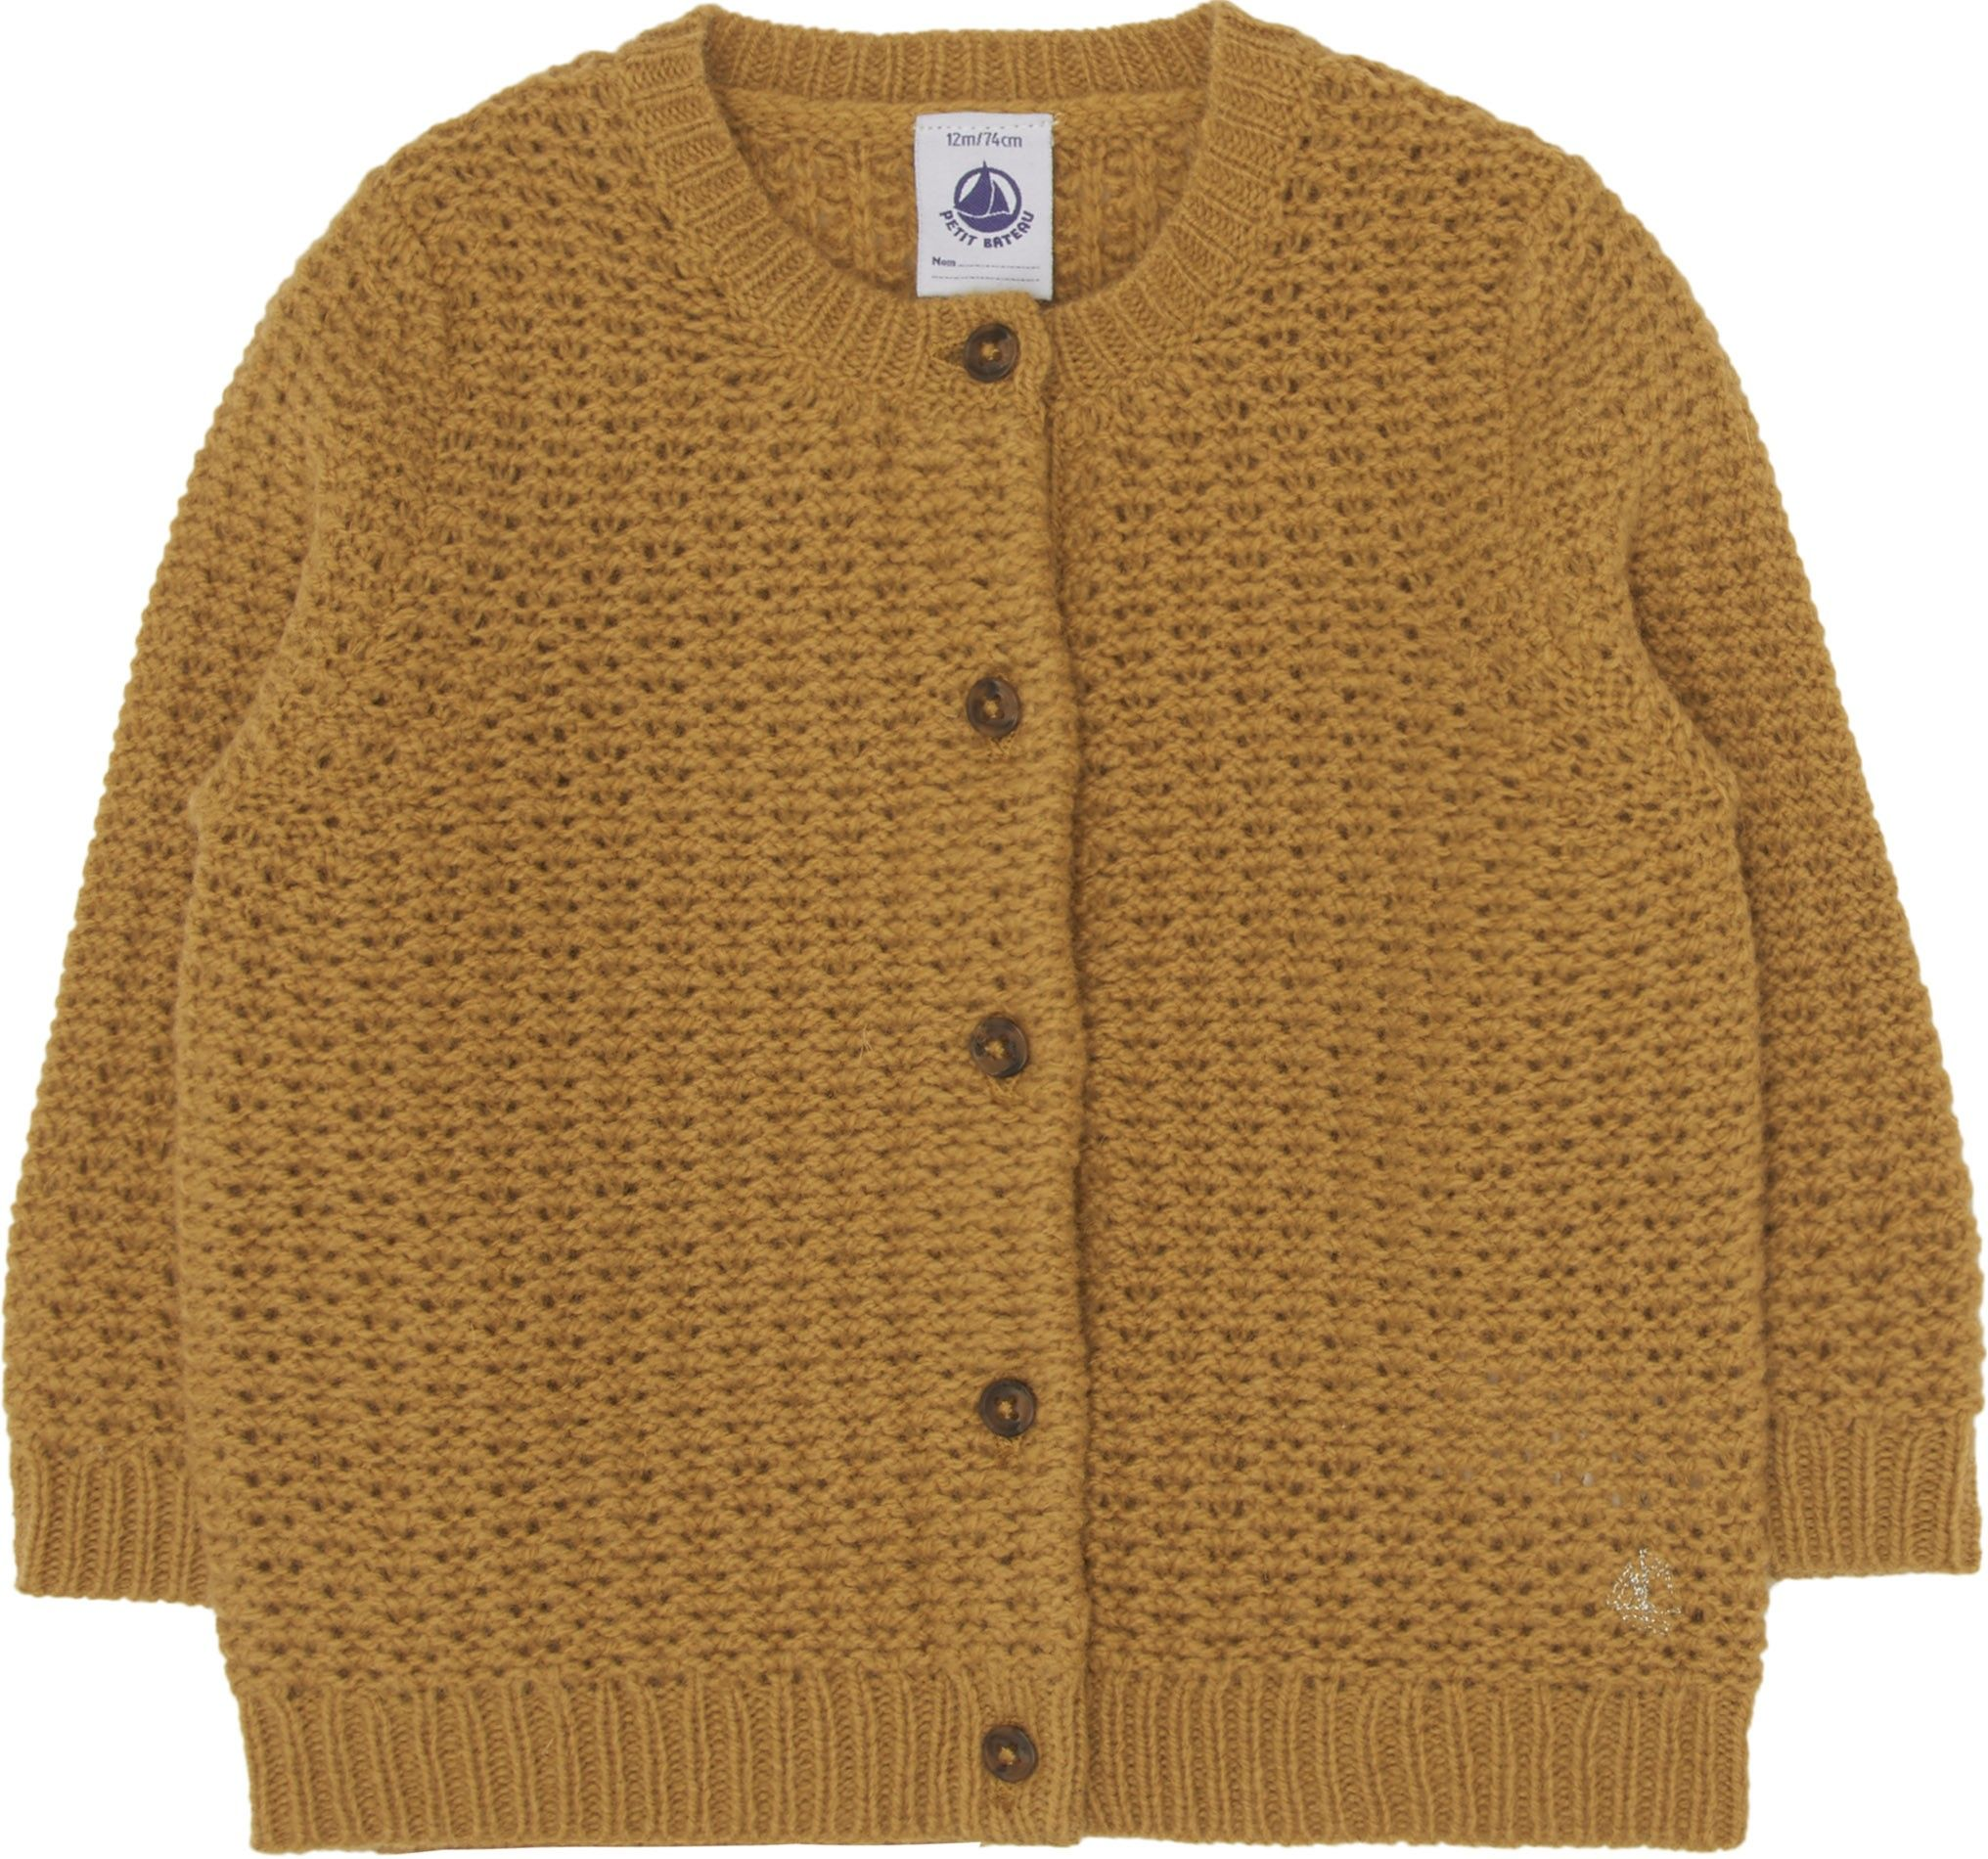 Shop The Petit Bateau Di Baby Cardigan In Yellow. Browse The ...